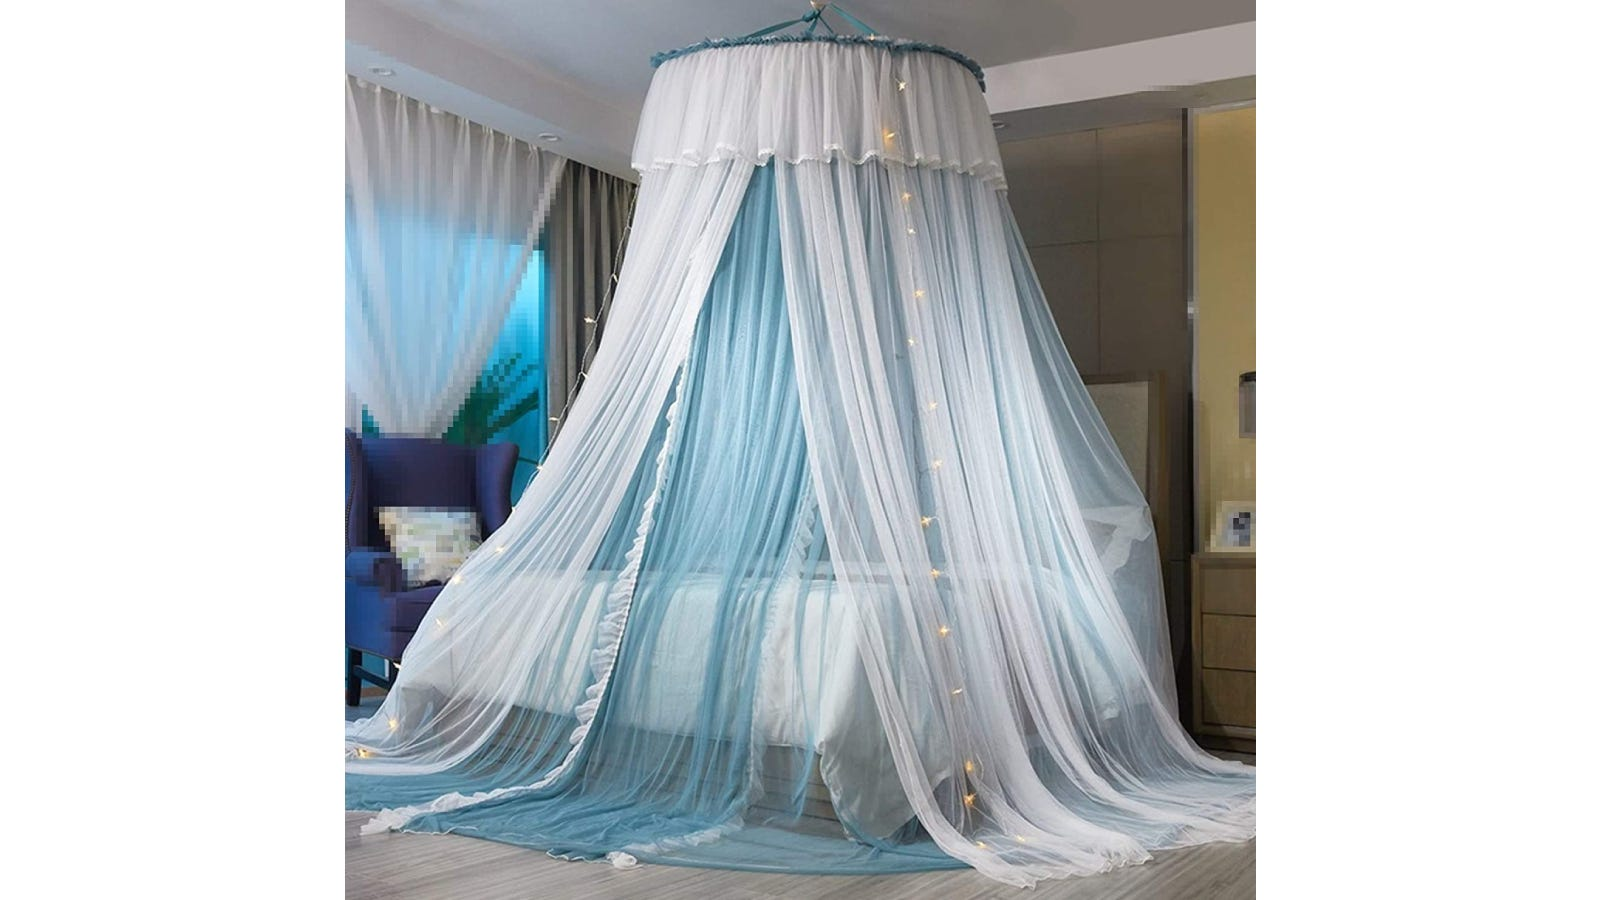 A large white and blue canopy hanging over a white bed.